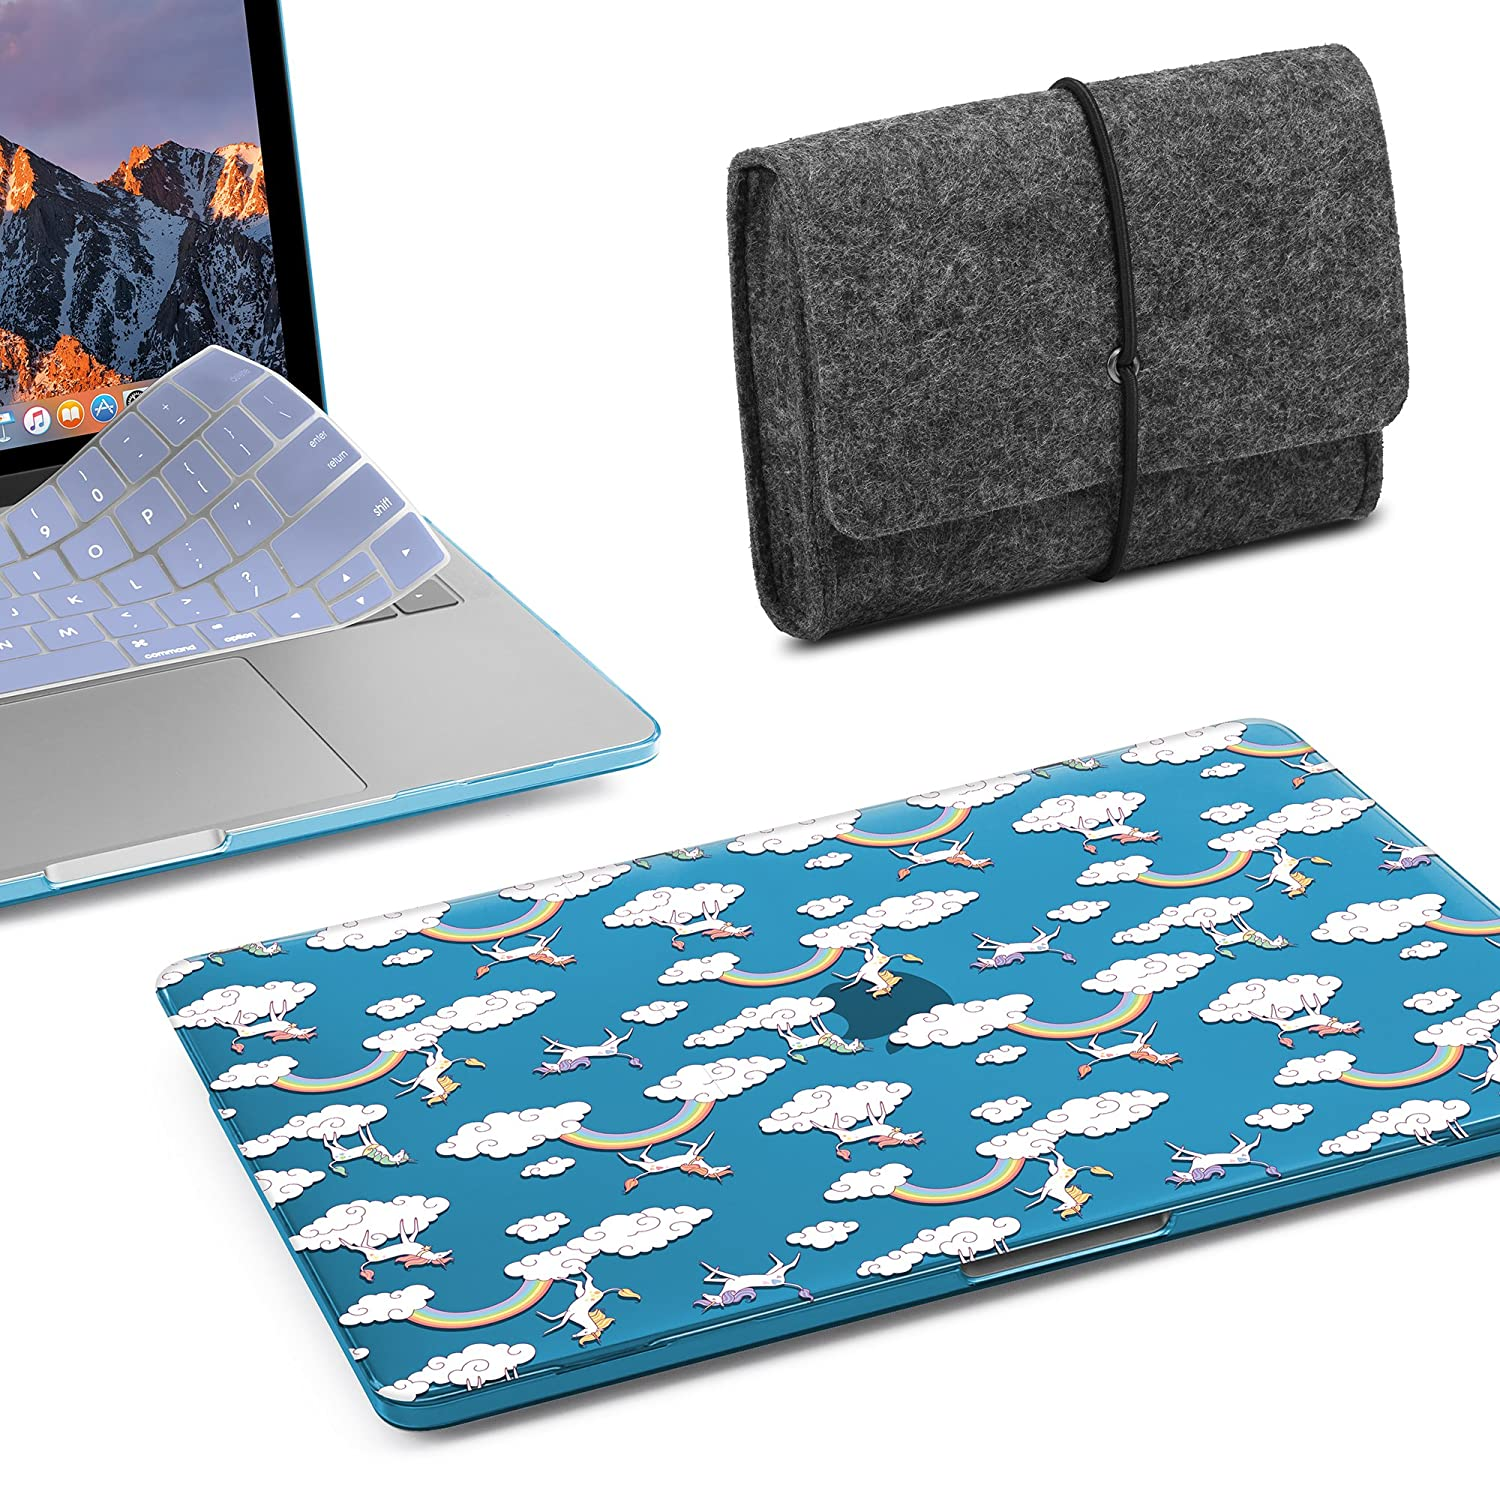 GMYLE 5 in 1 Starter Bundle: Water Repellent Sleeve, USB C Hub, Plastic Hard Case, Screen Protector & Keyboard Cover MacBook Pro 13 inch 2016-2018 Without Touch Bar(A1989/A1706/A1708) NPL550003